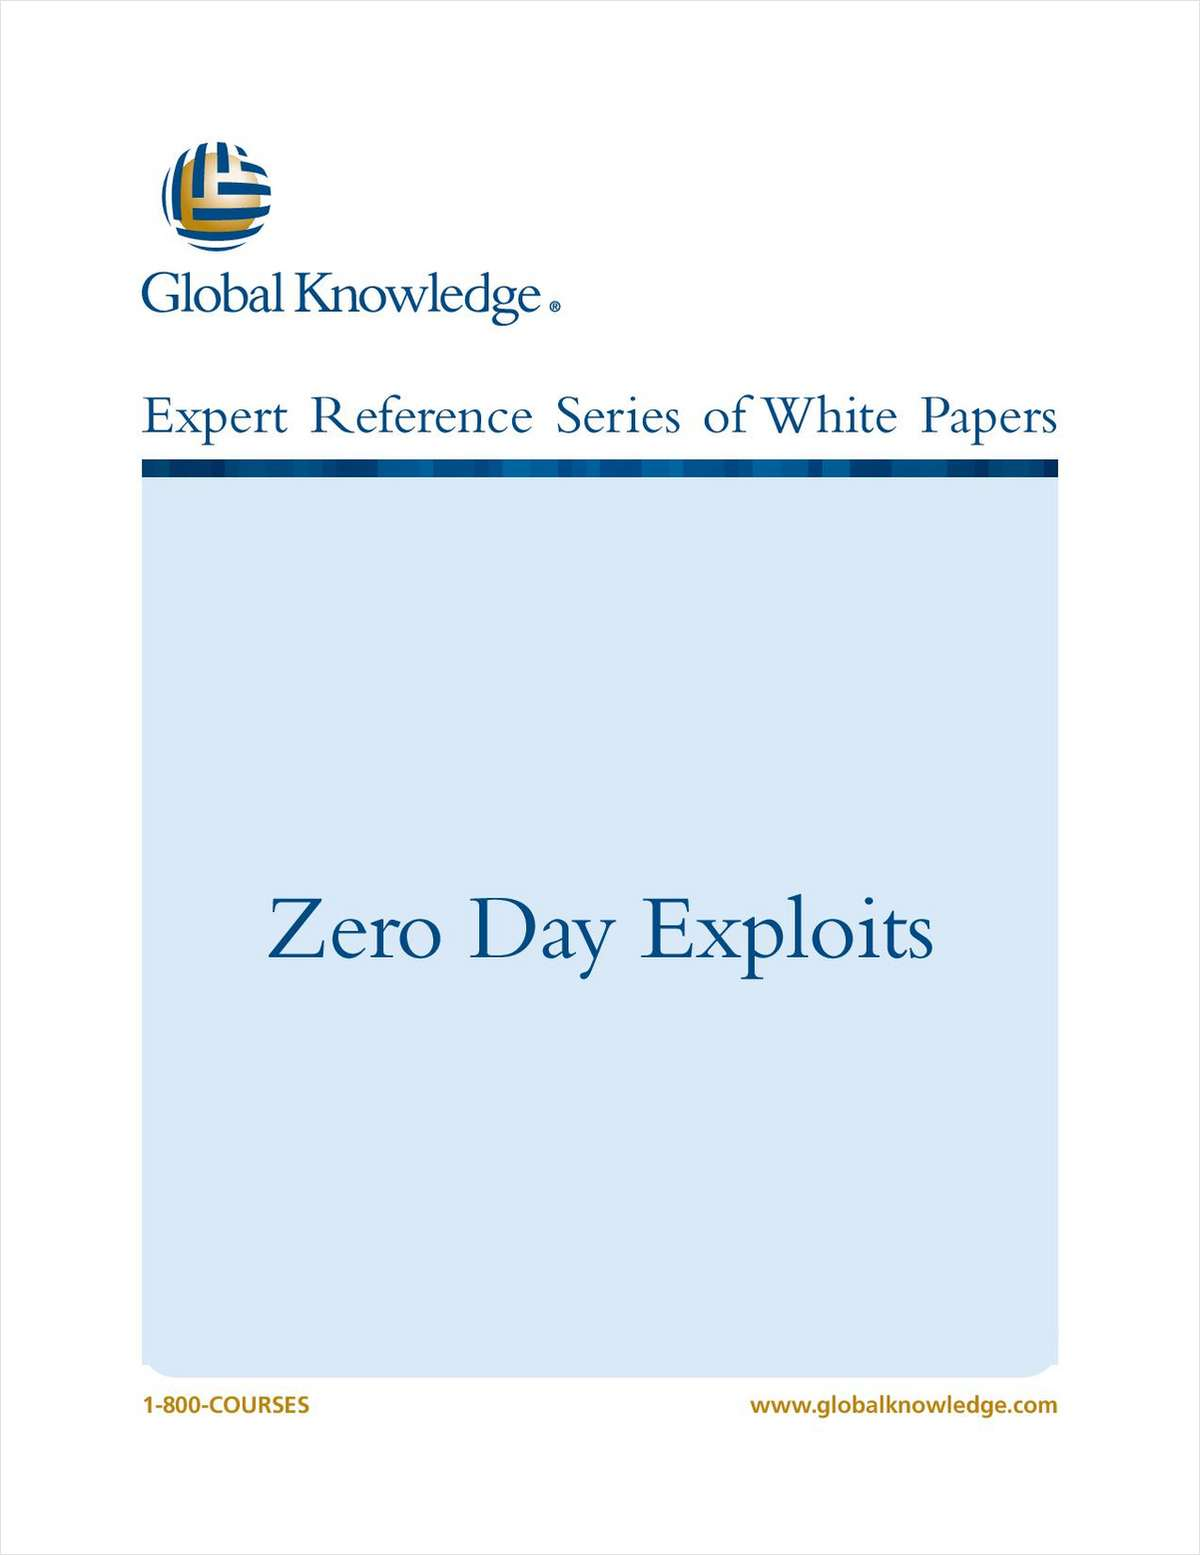 Zero Day Exploits